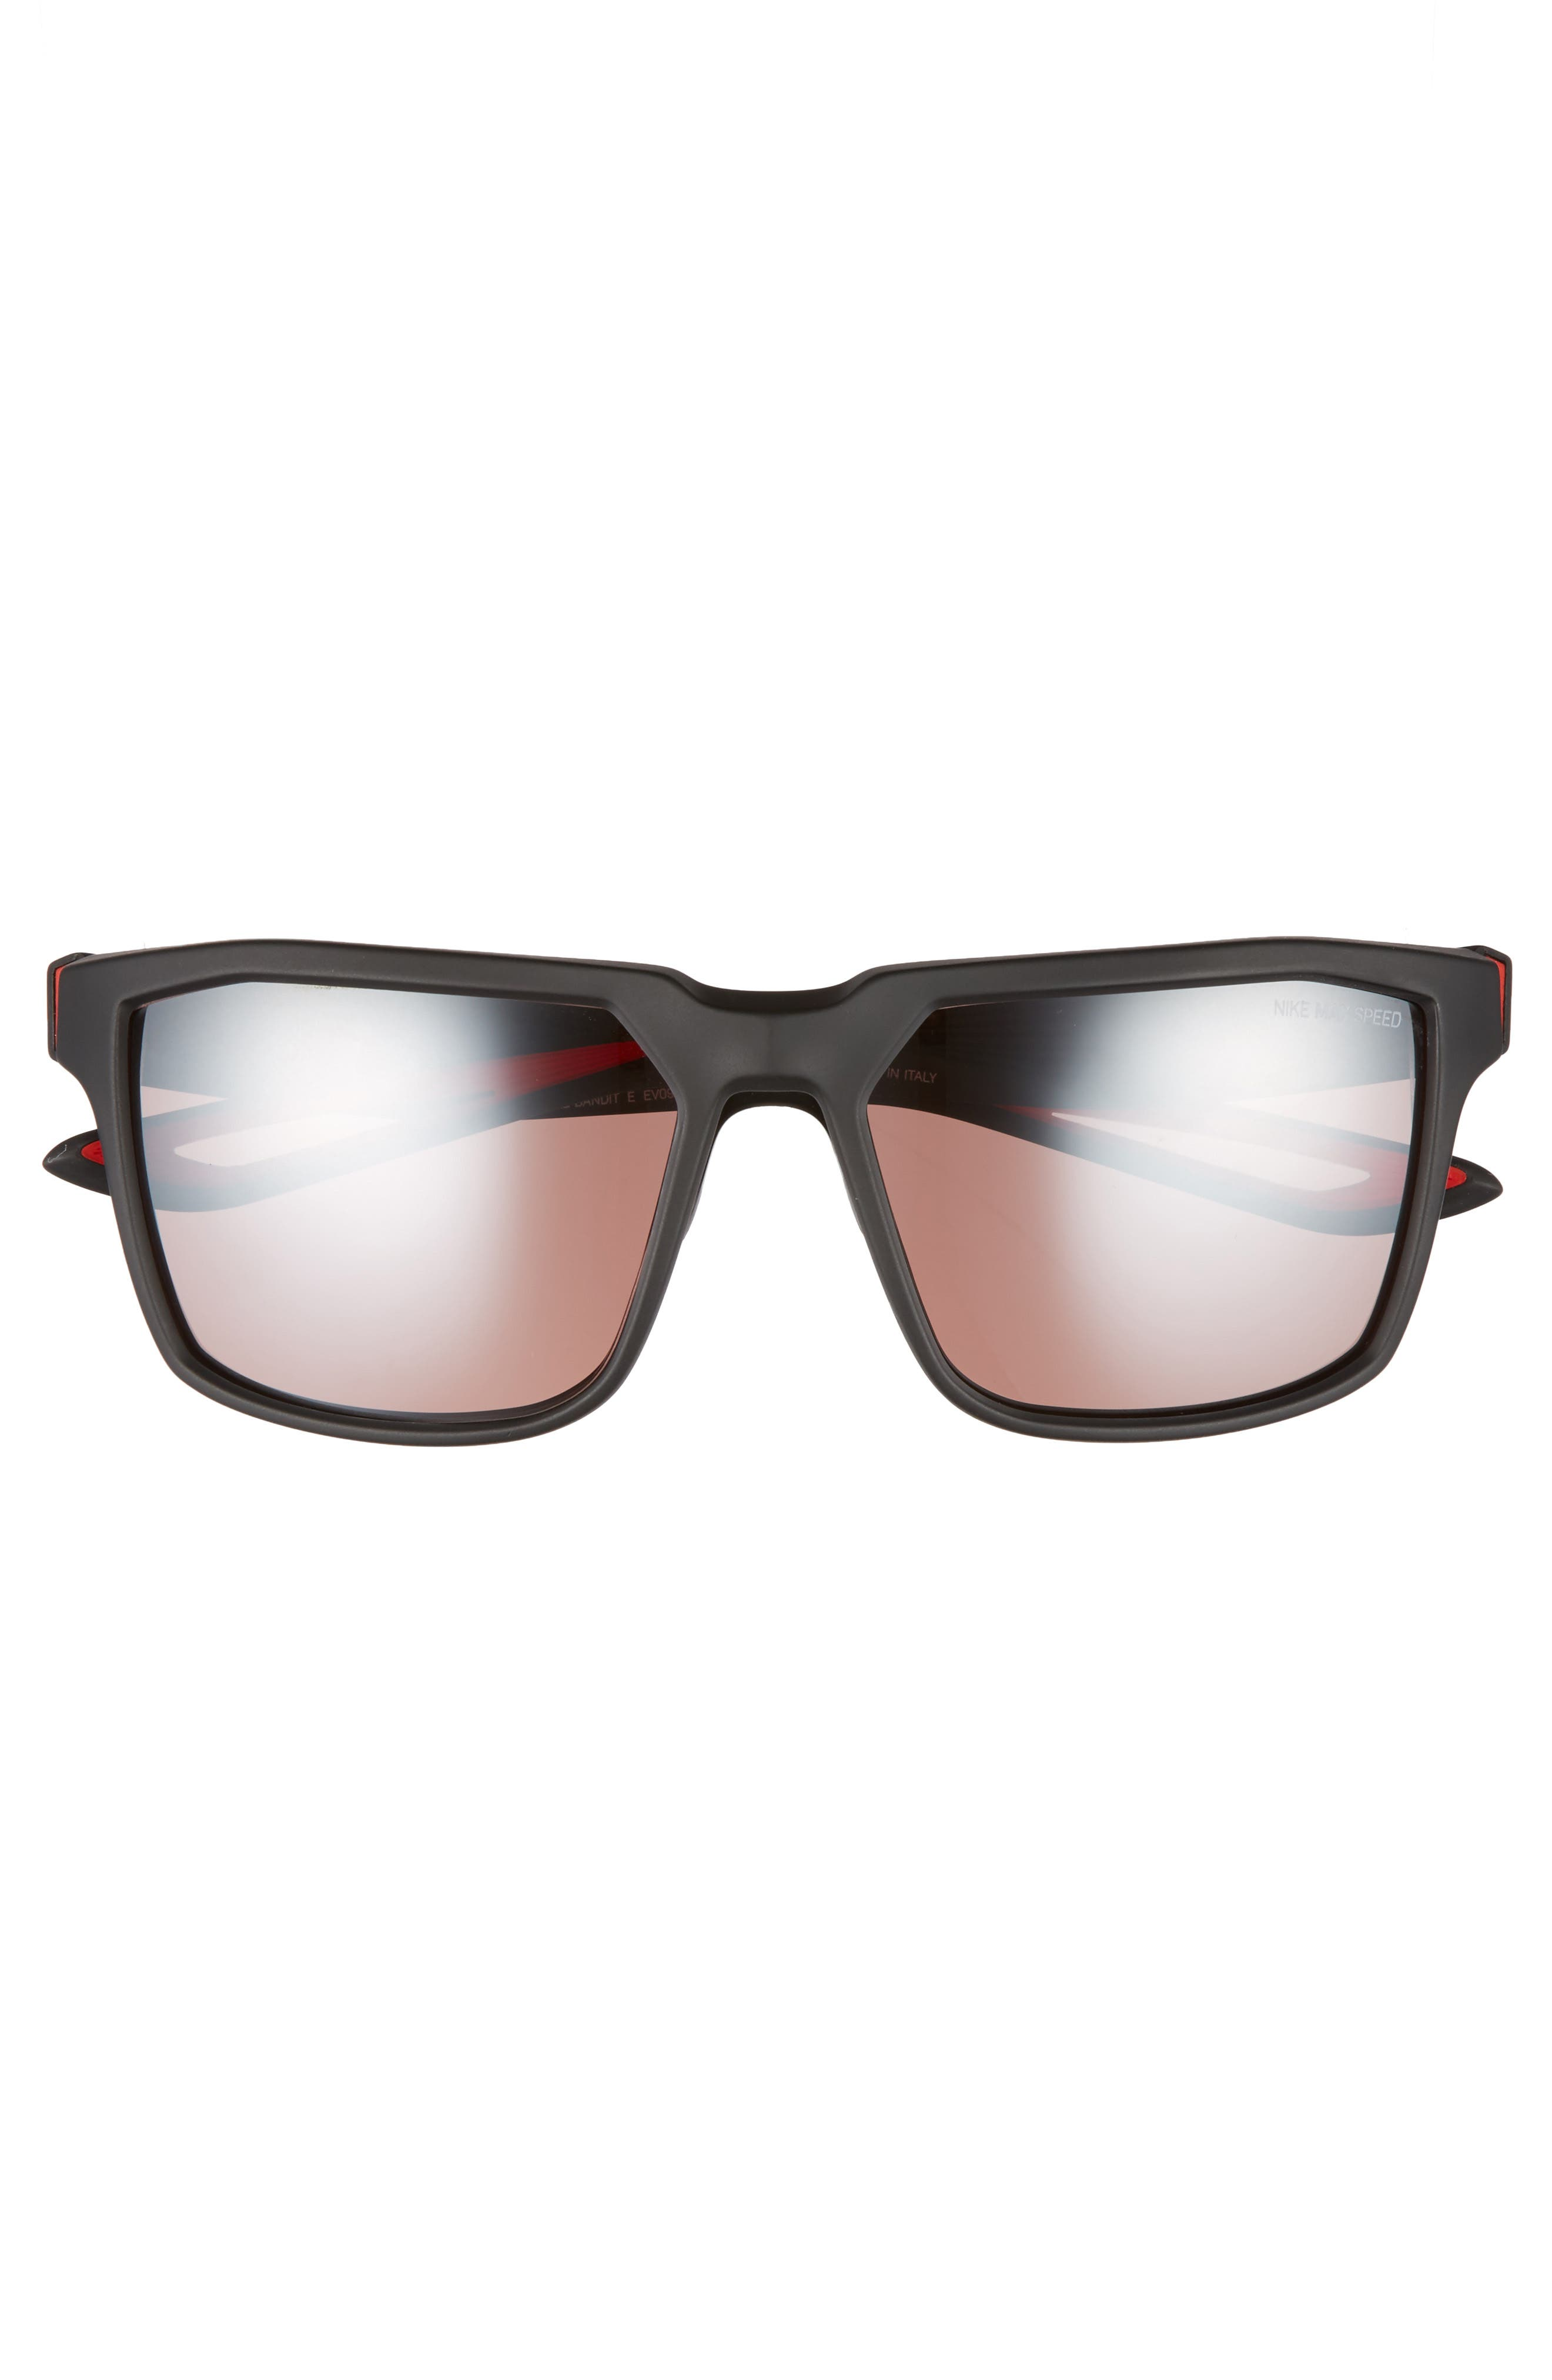 Bandit E 59mm Running Sunglasses,                             Alternate thumbnail 2, color,                             Matte Black/ Bright Crimson